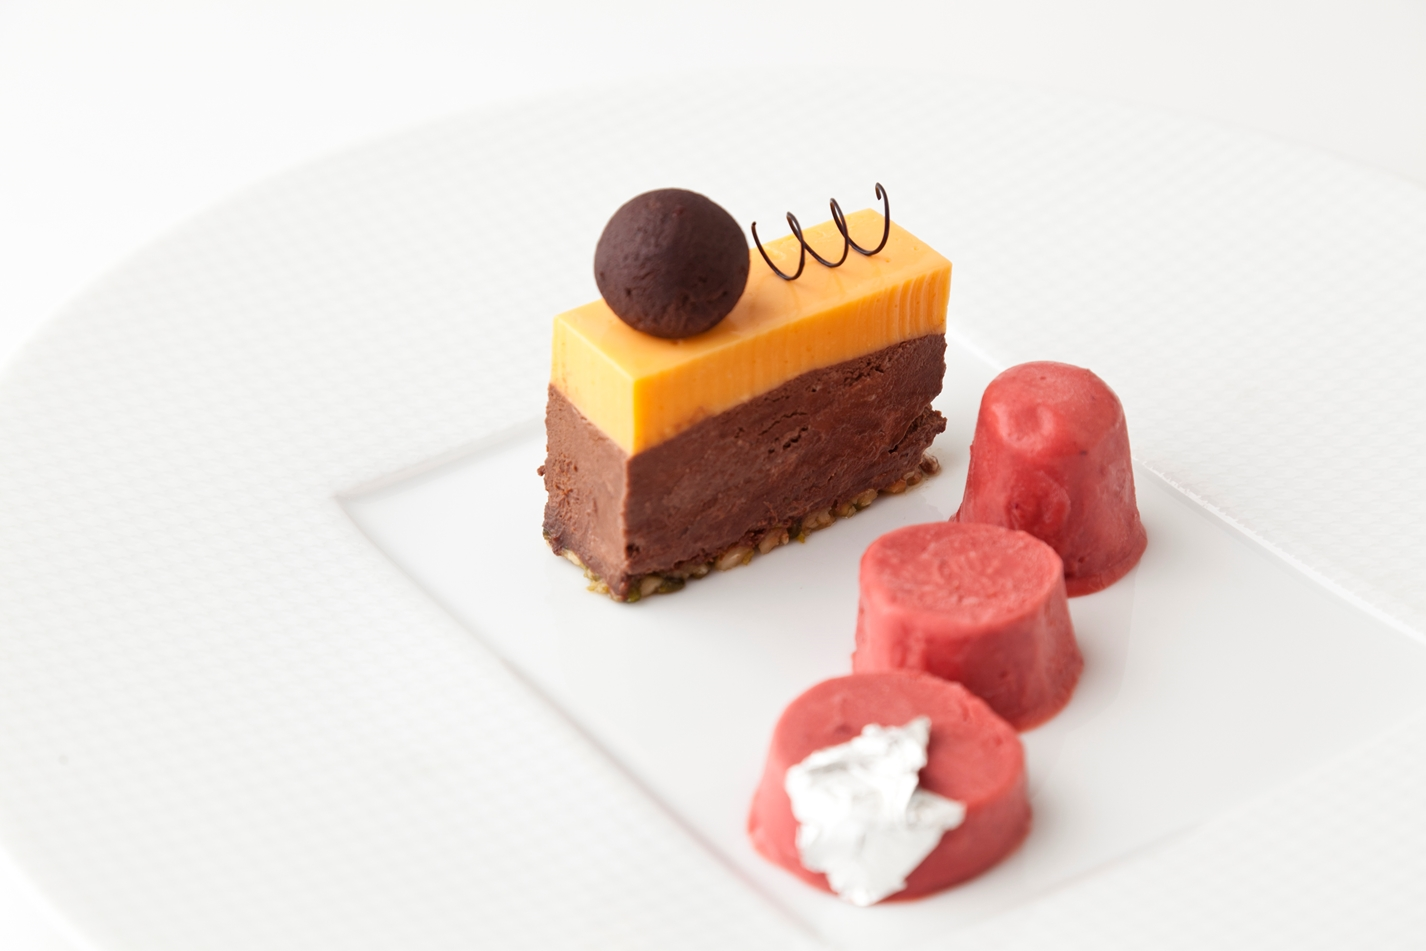 Whisky truffle, dark chocolate-chikki delice, orange mousse and cranberry kulfi